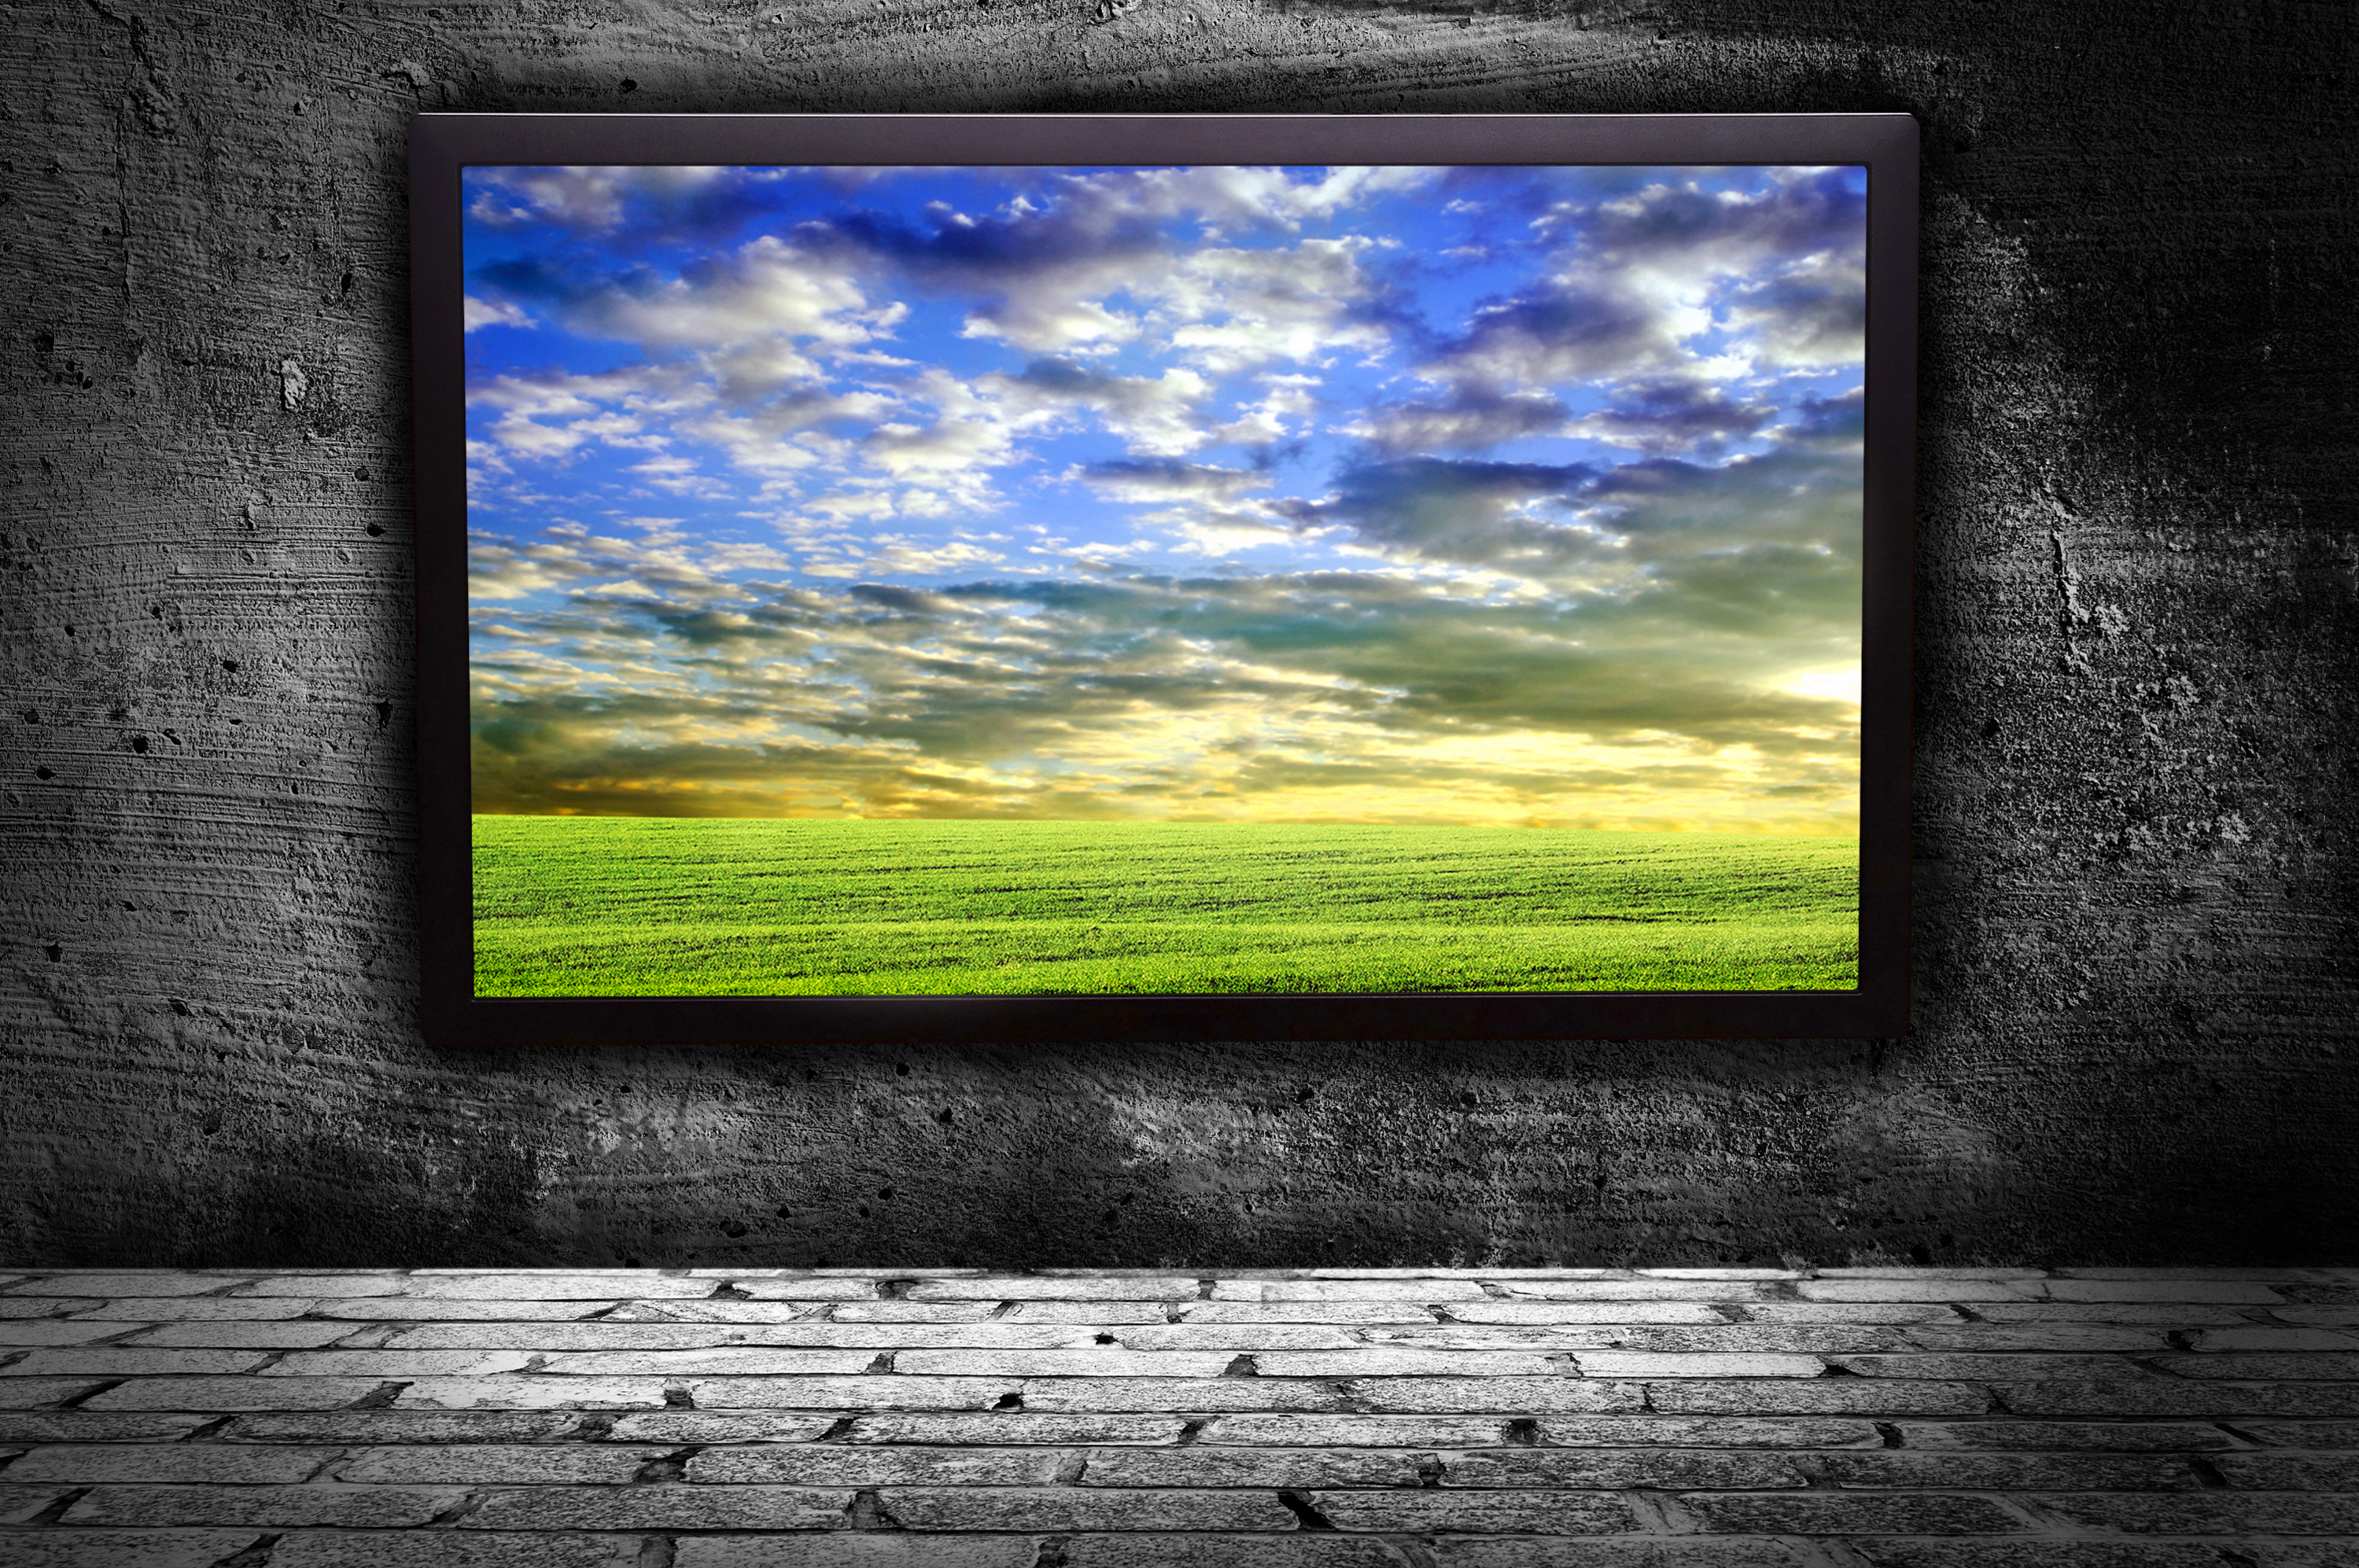 monitor with thea picture of of pure field against the gray walls